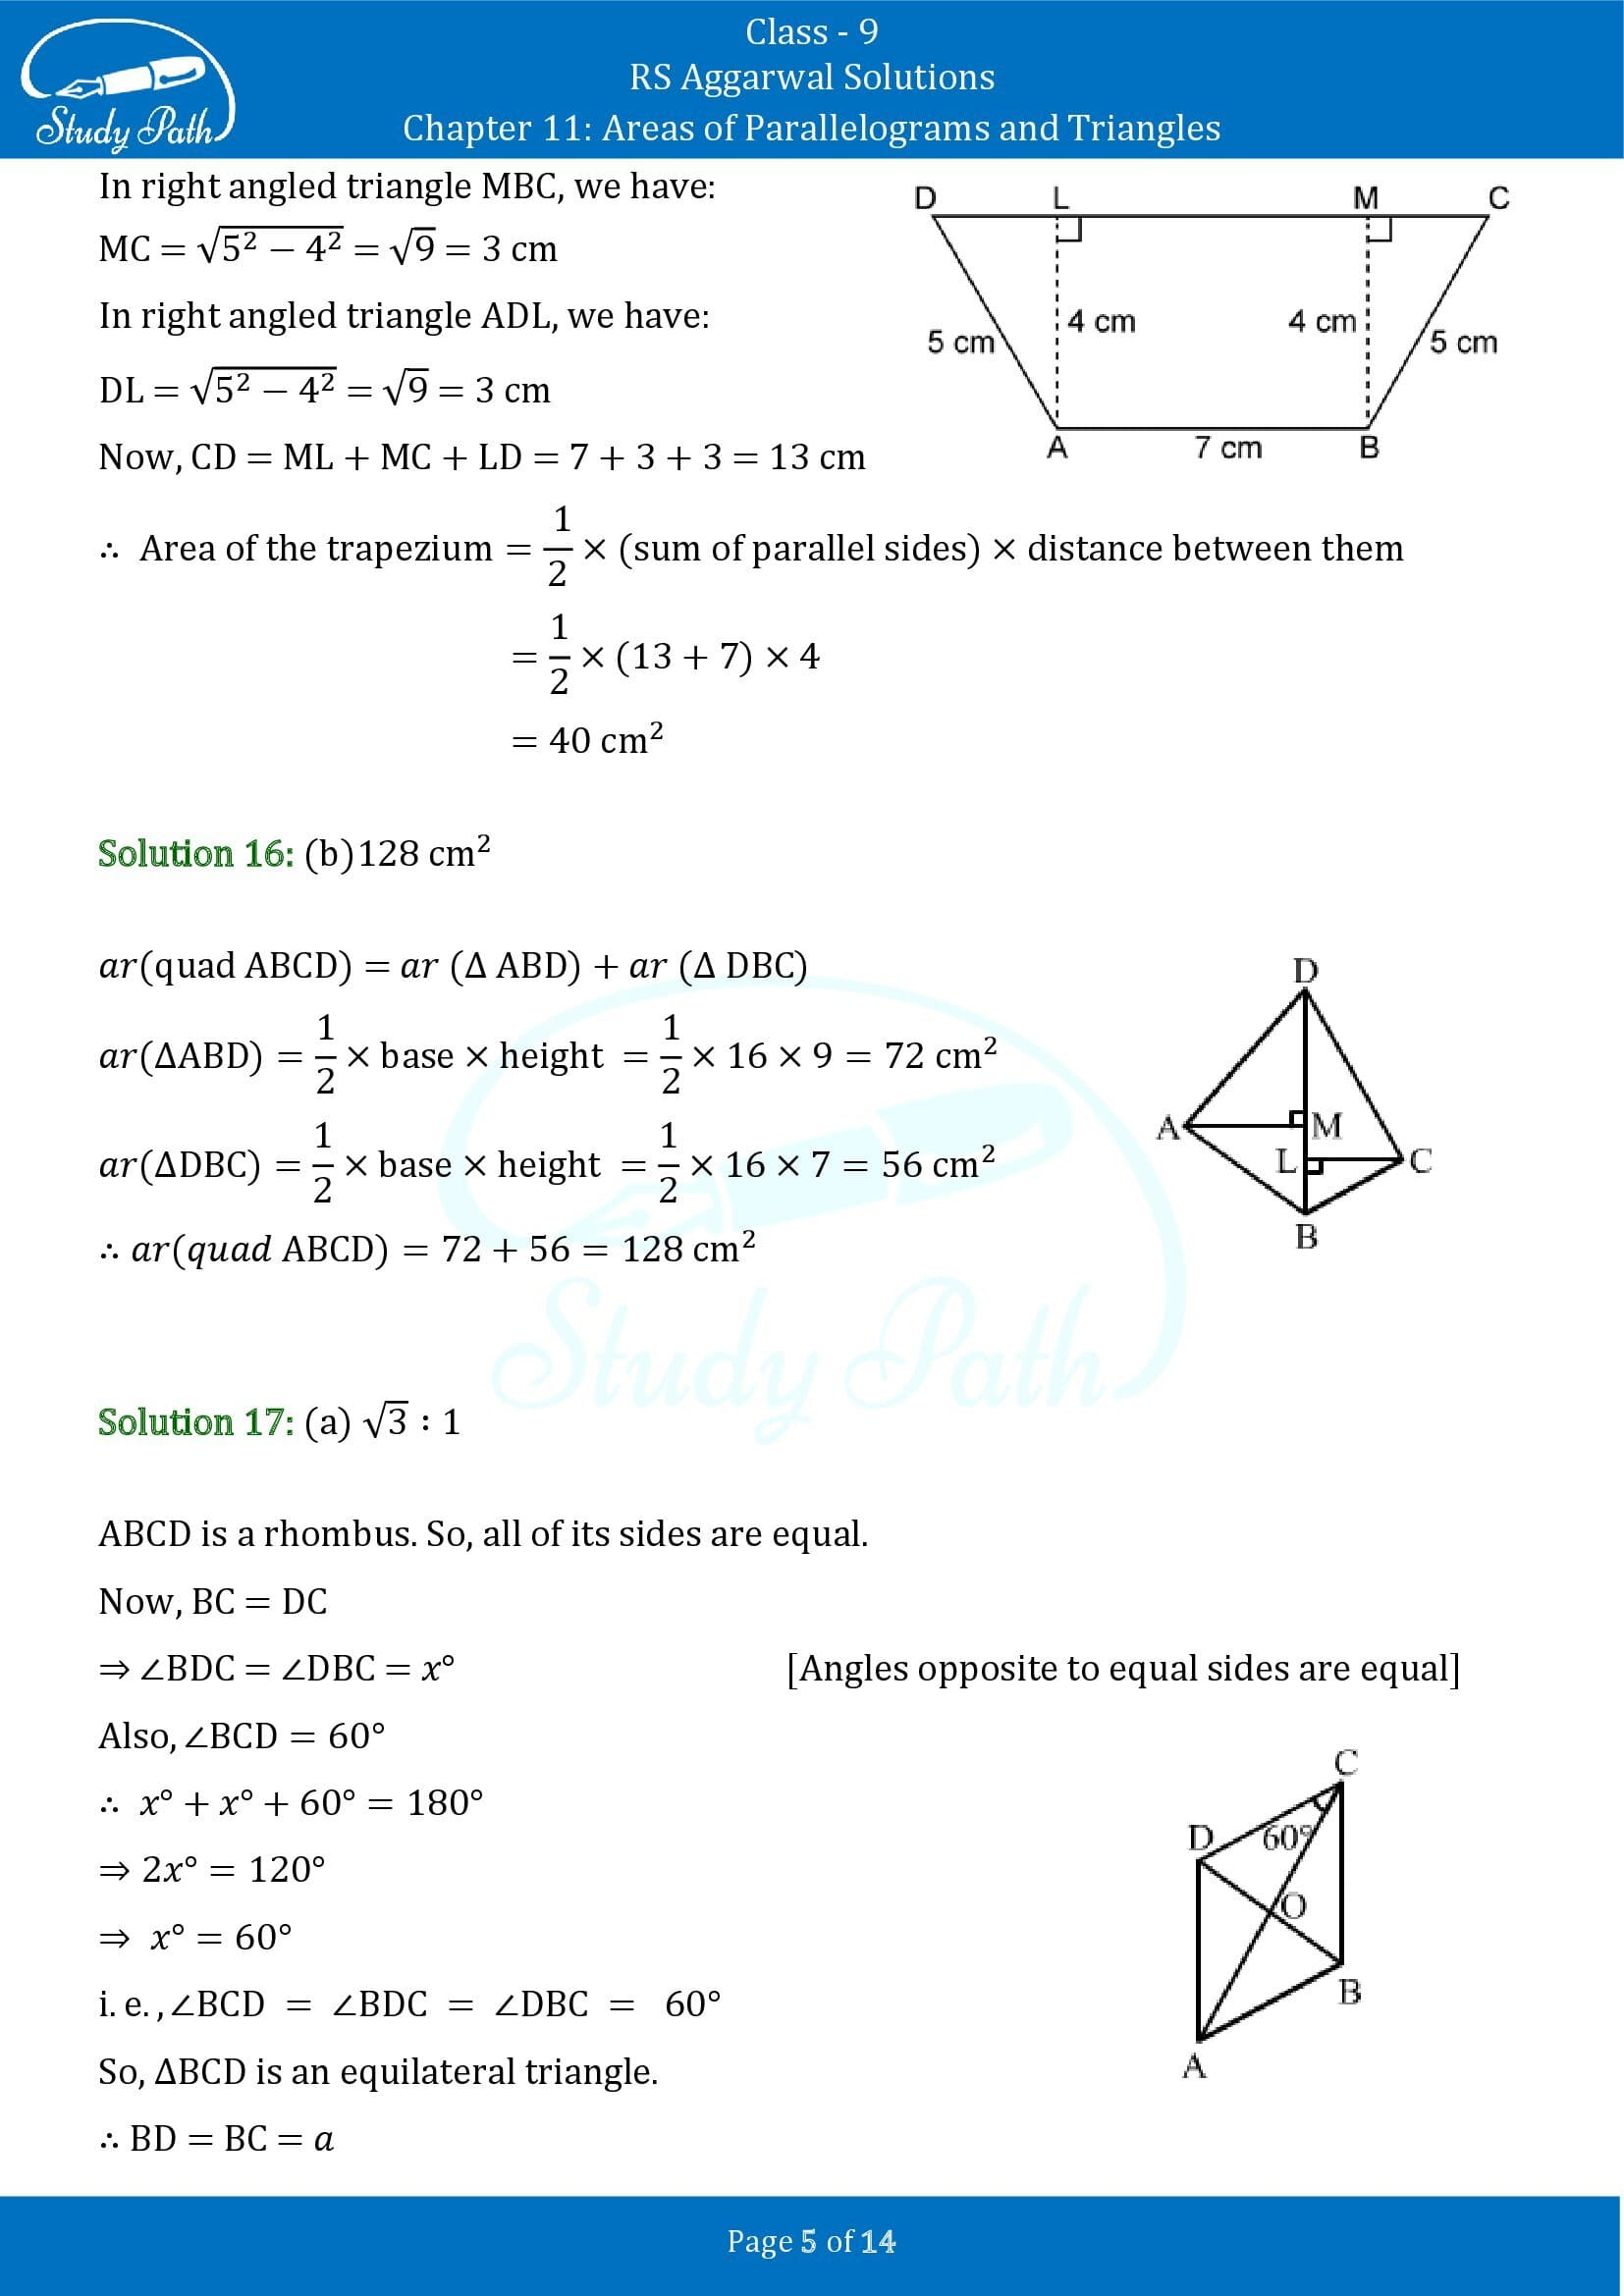 RS Aggarwal Solutions Class 9 Chapter 11 Areas of Parallelograms and Triangles Multiple Choice Questions MCQs 00005